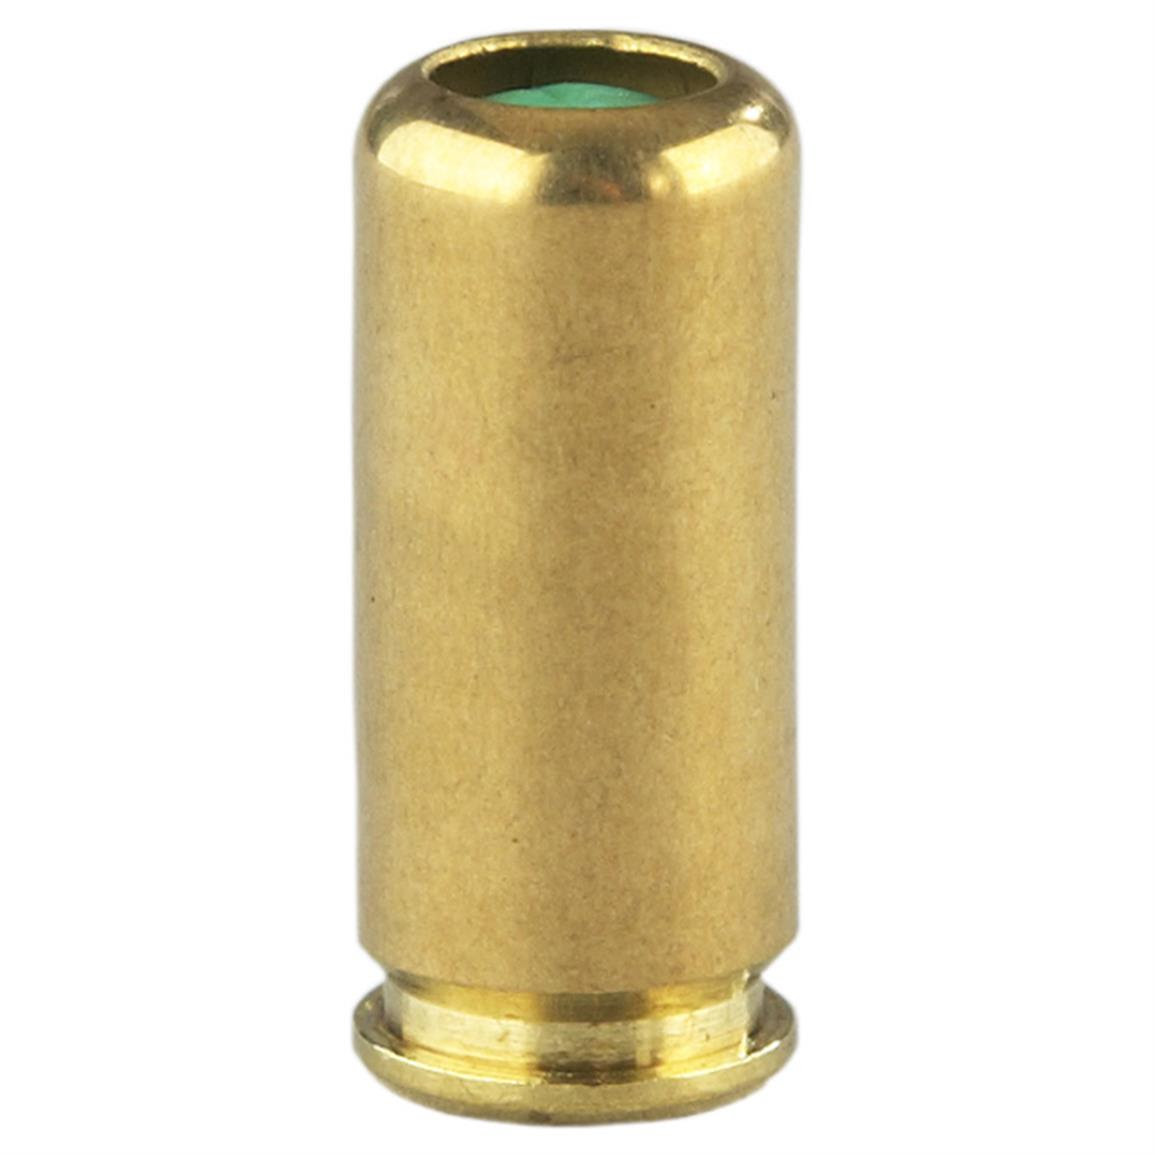 PPU 9mm PA Standard Blank Ammo 50 rds. - 222535, 9mm Ammo at ...